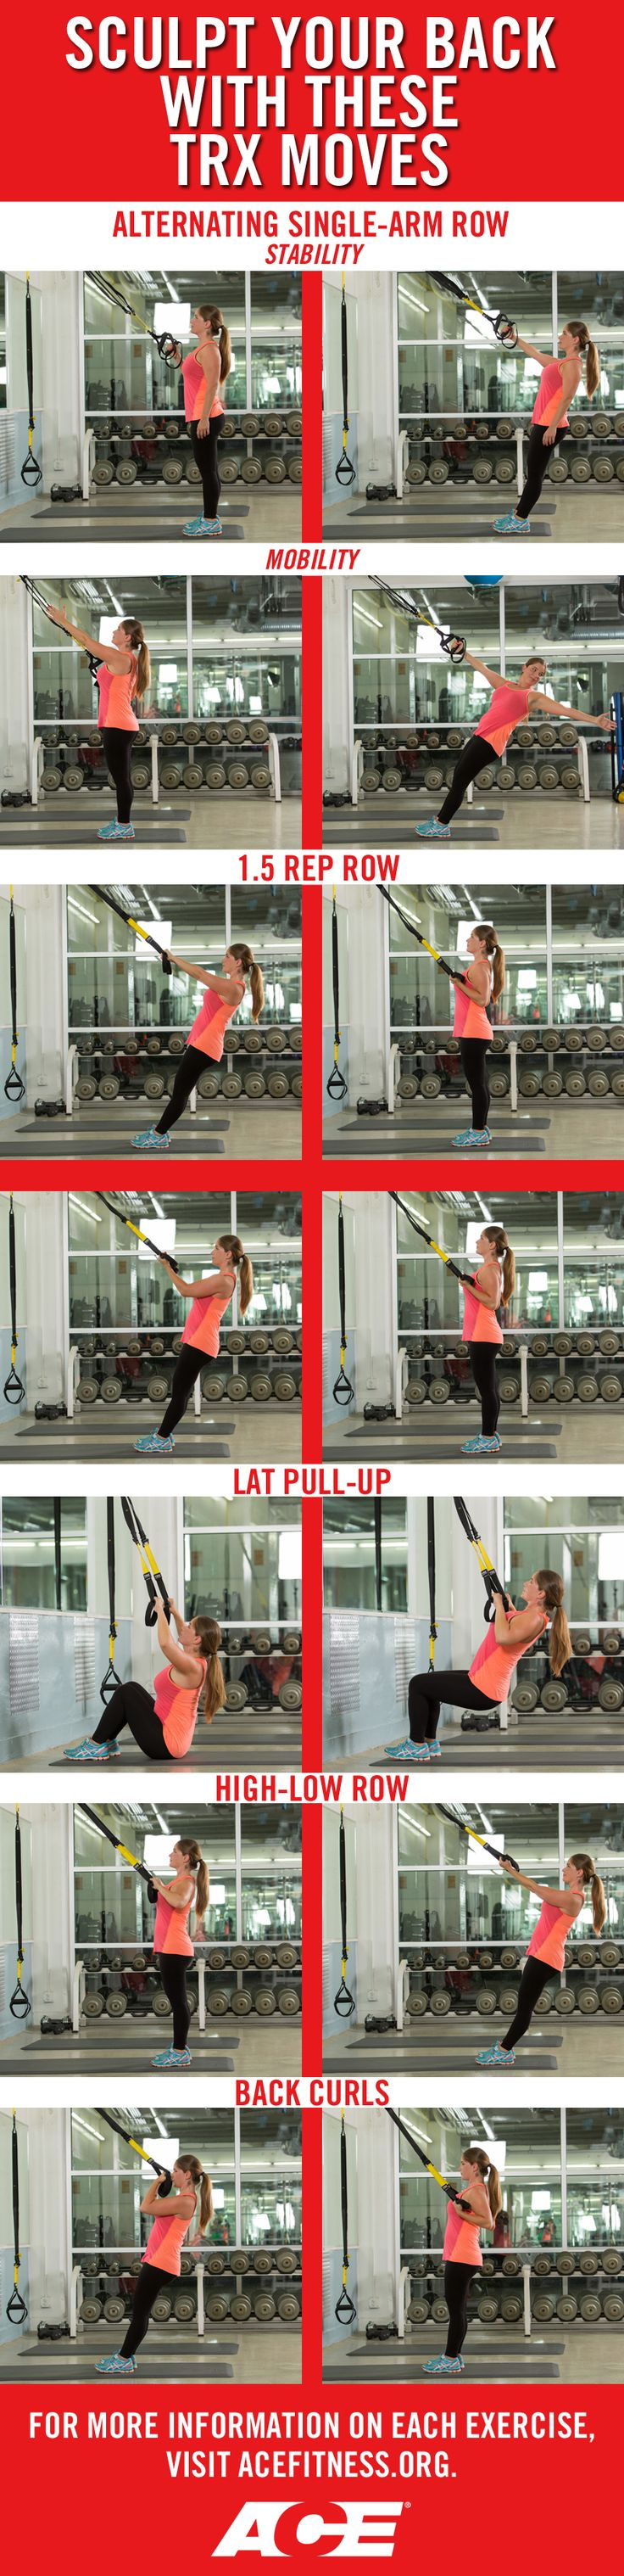 Sculpt Your Back with These TRX Moves